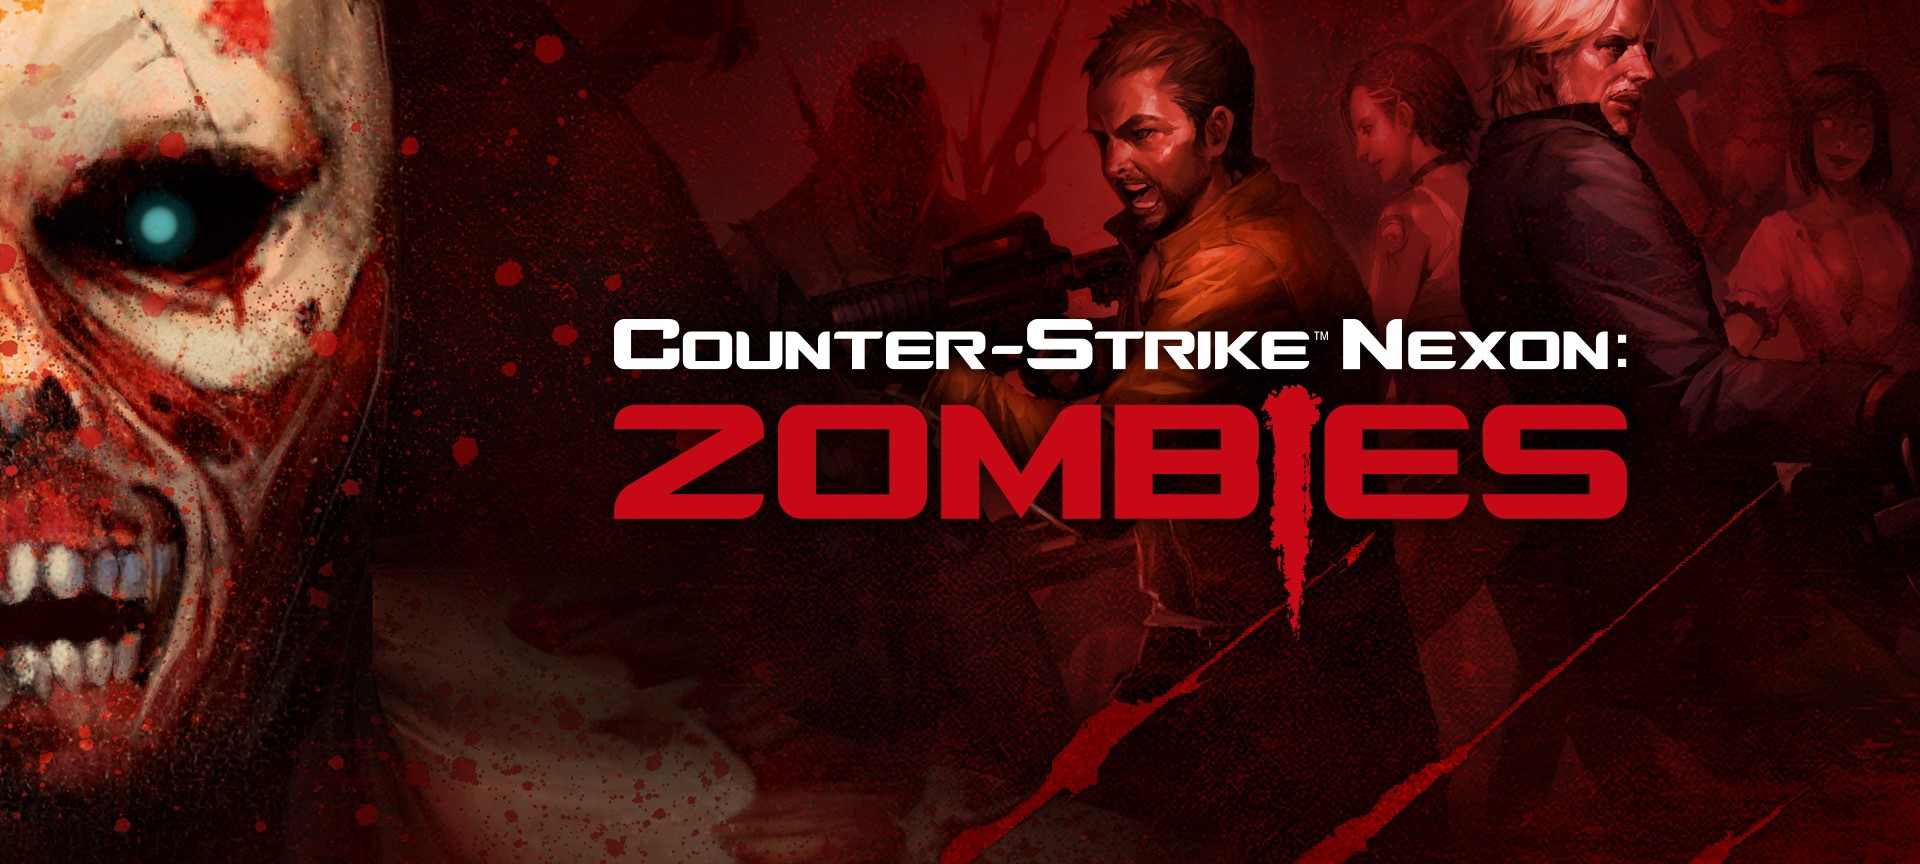 Counter-Strike-Nexon-Zombies_Key-visual-e1407424708942